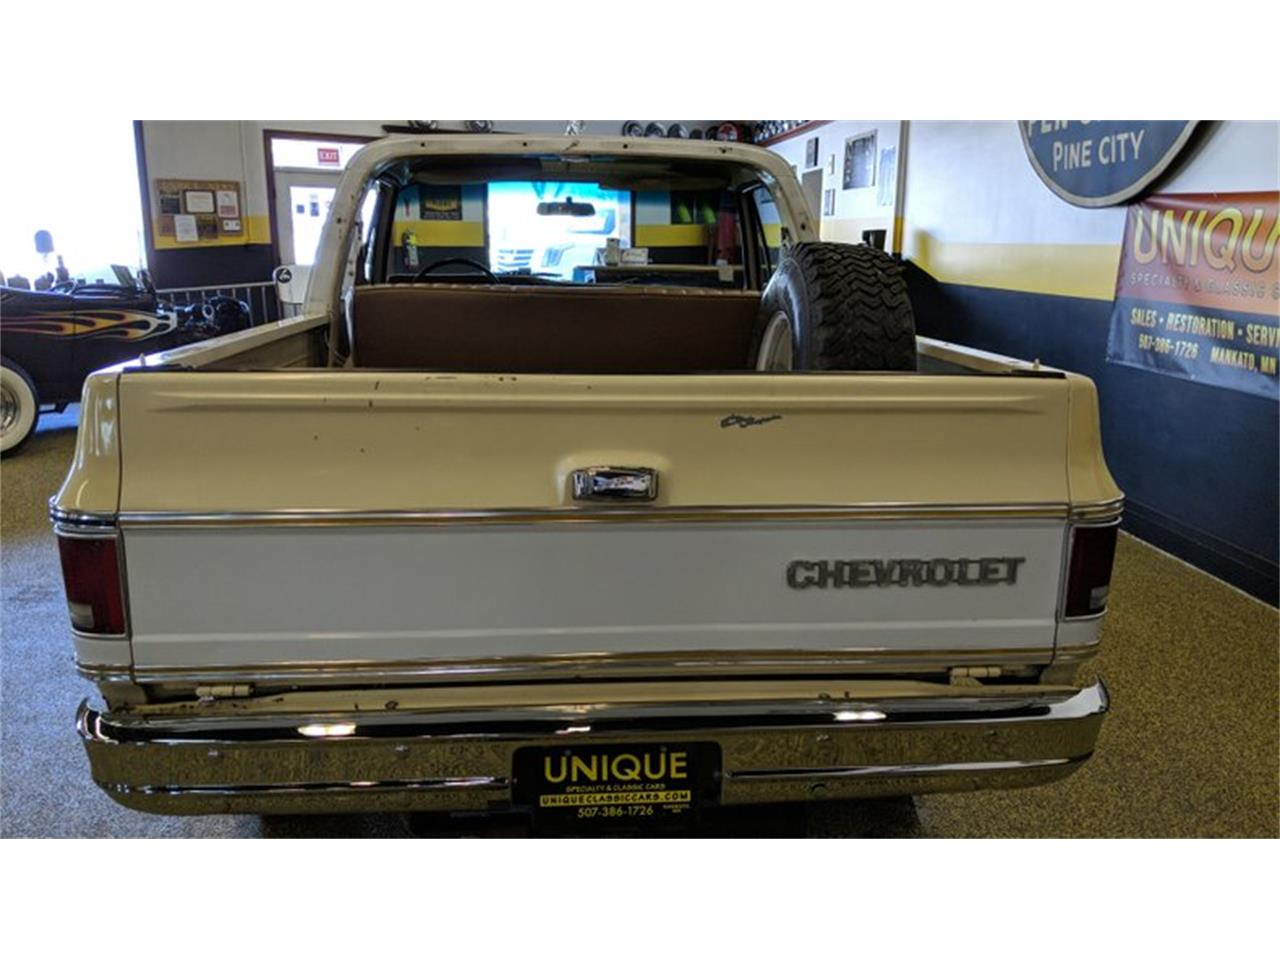 Large Picture of 1977 Chevrolet Blazer located in Minnesota - $16,900.00 - PB02